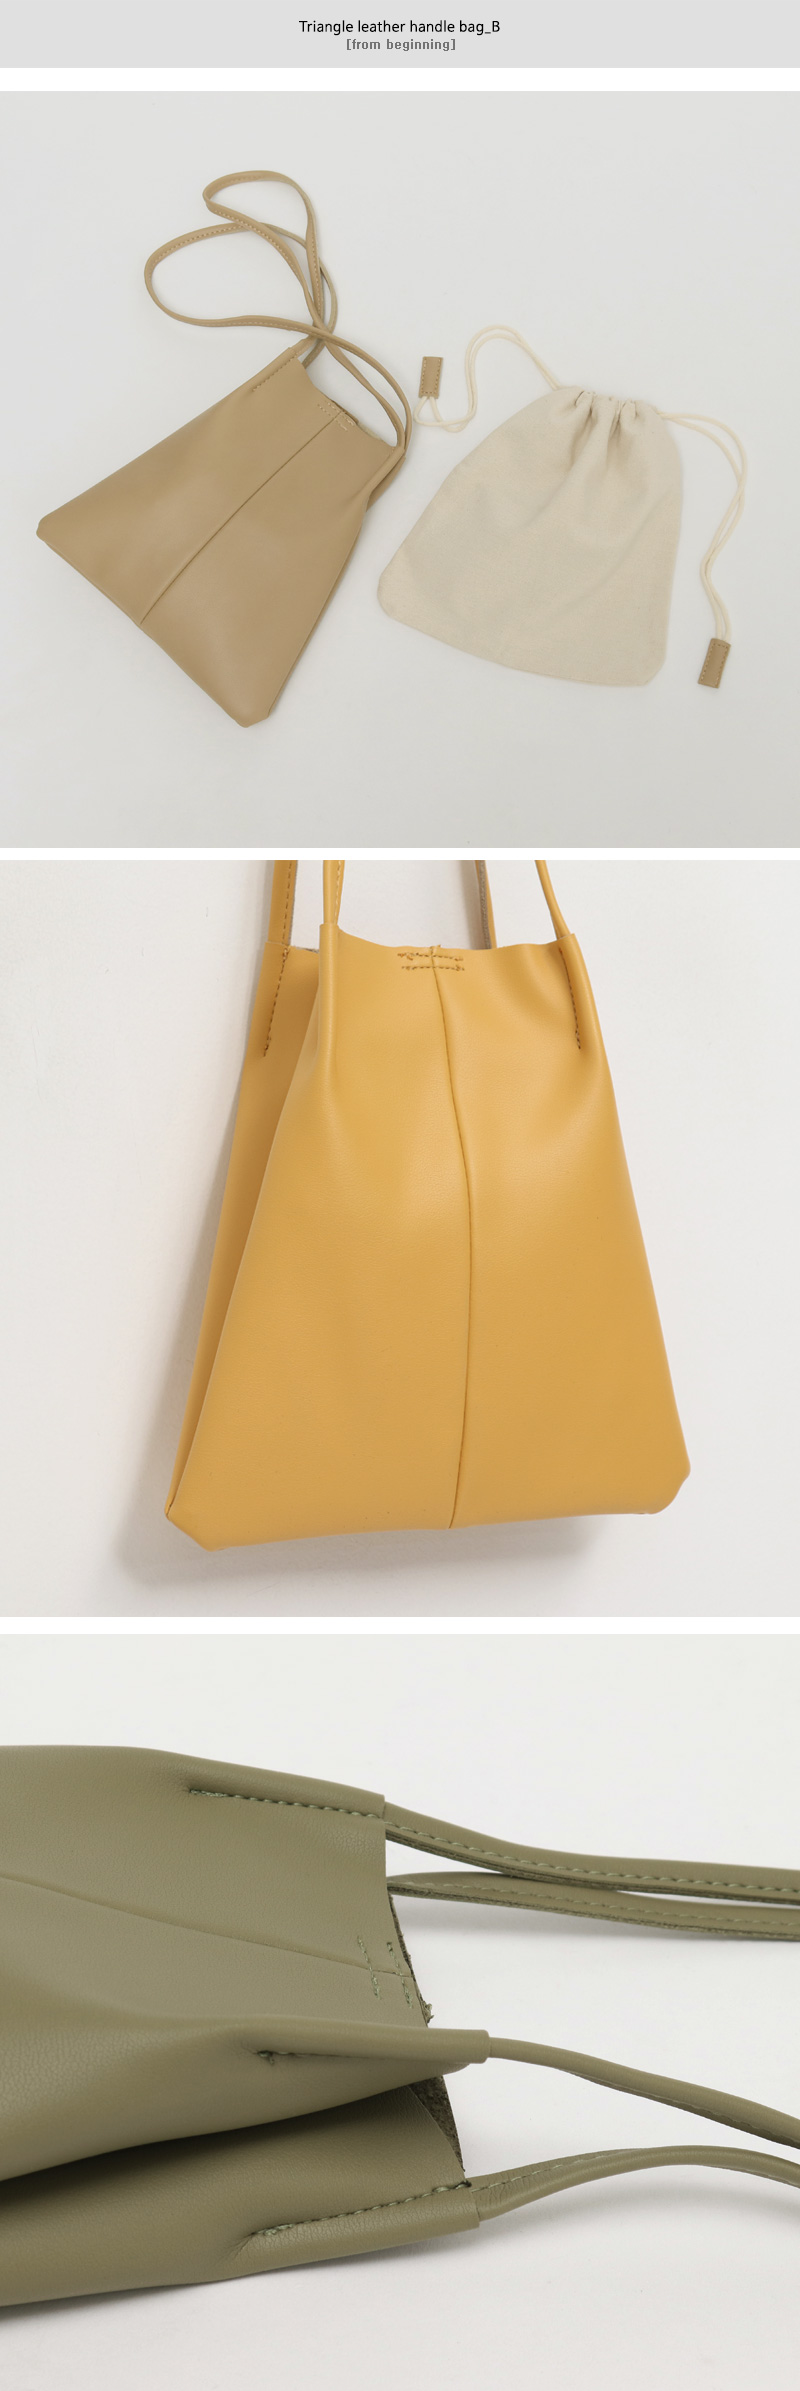 Triangle leather handle bag_B